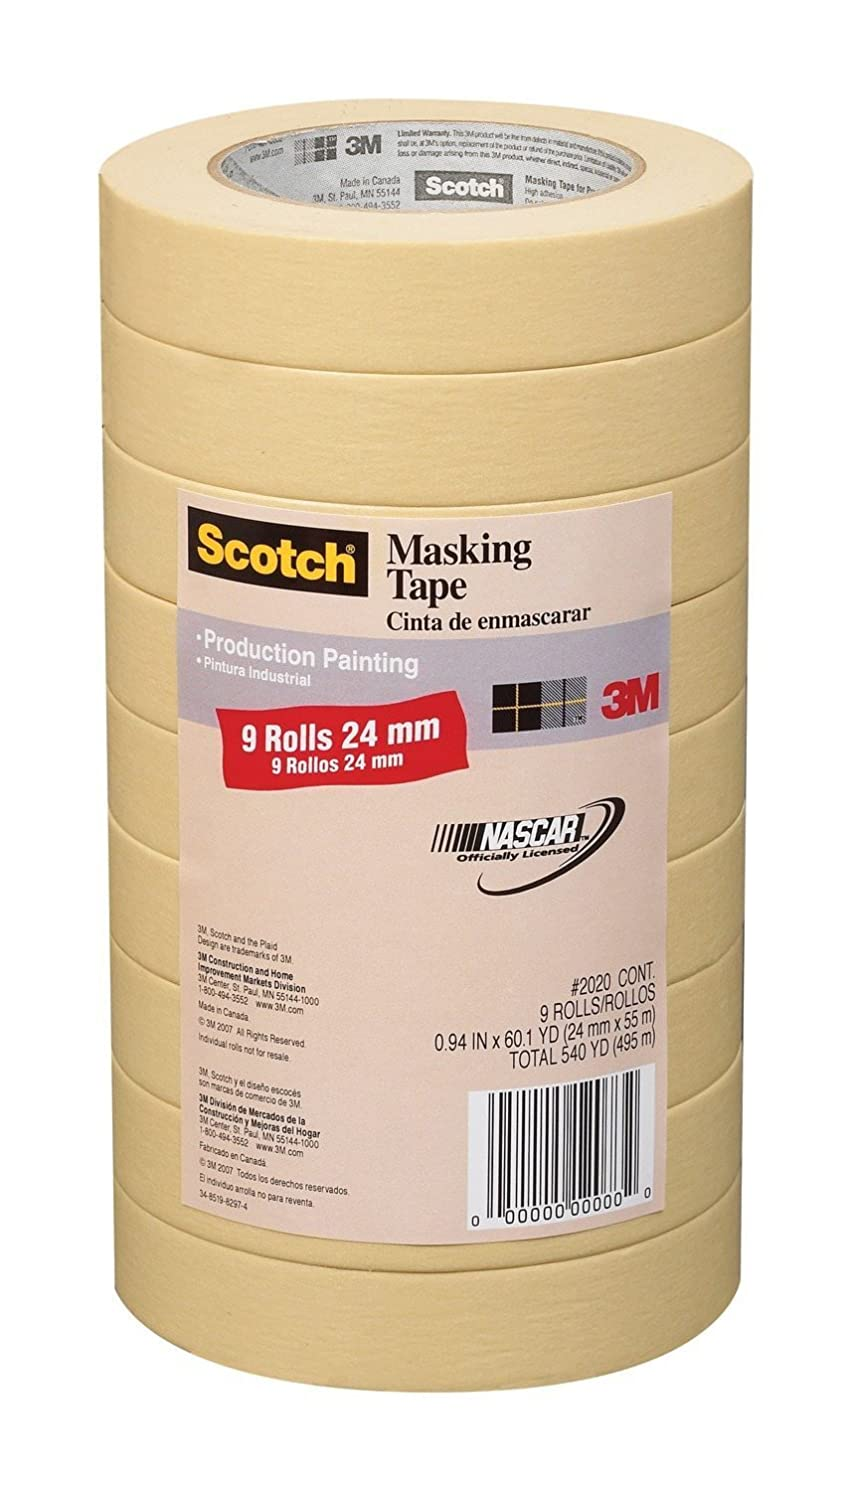 3M Scotch General Purpose Masking Tape 2020-24A-CP, 0.94-Inch by 60.1-Yards, 2 Set (9 Rolls)